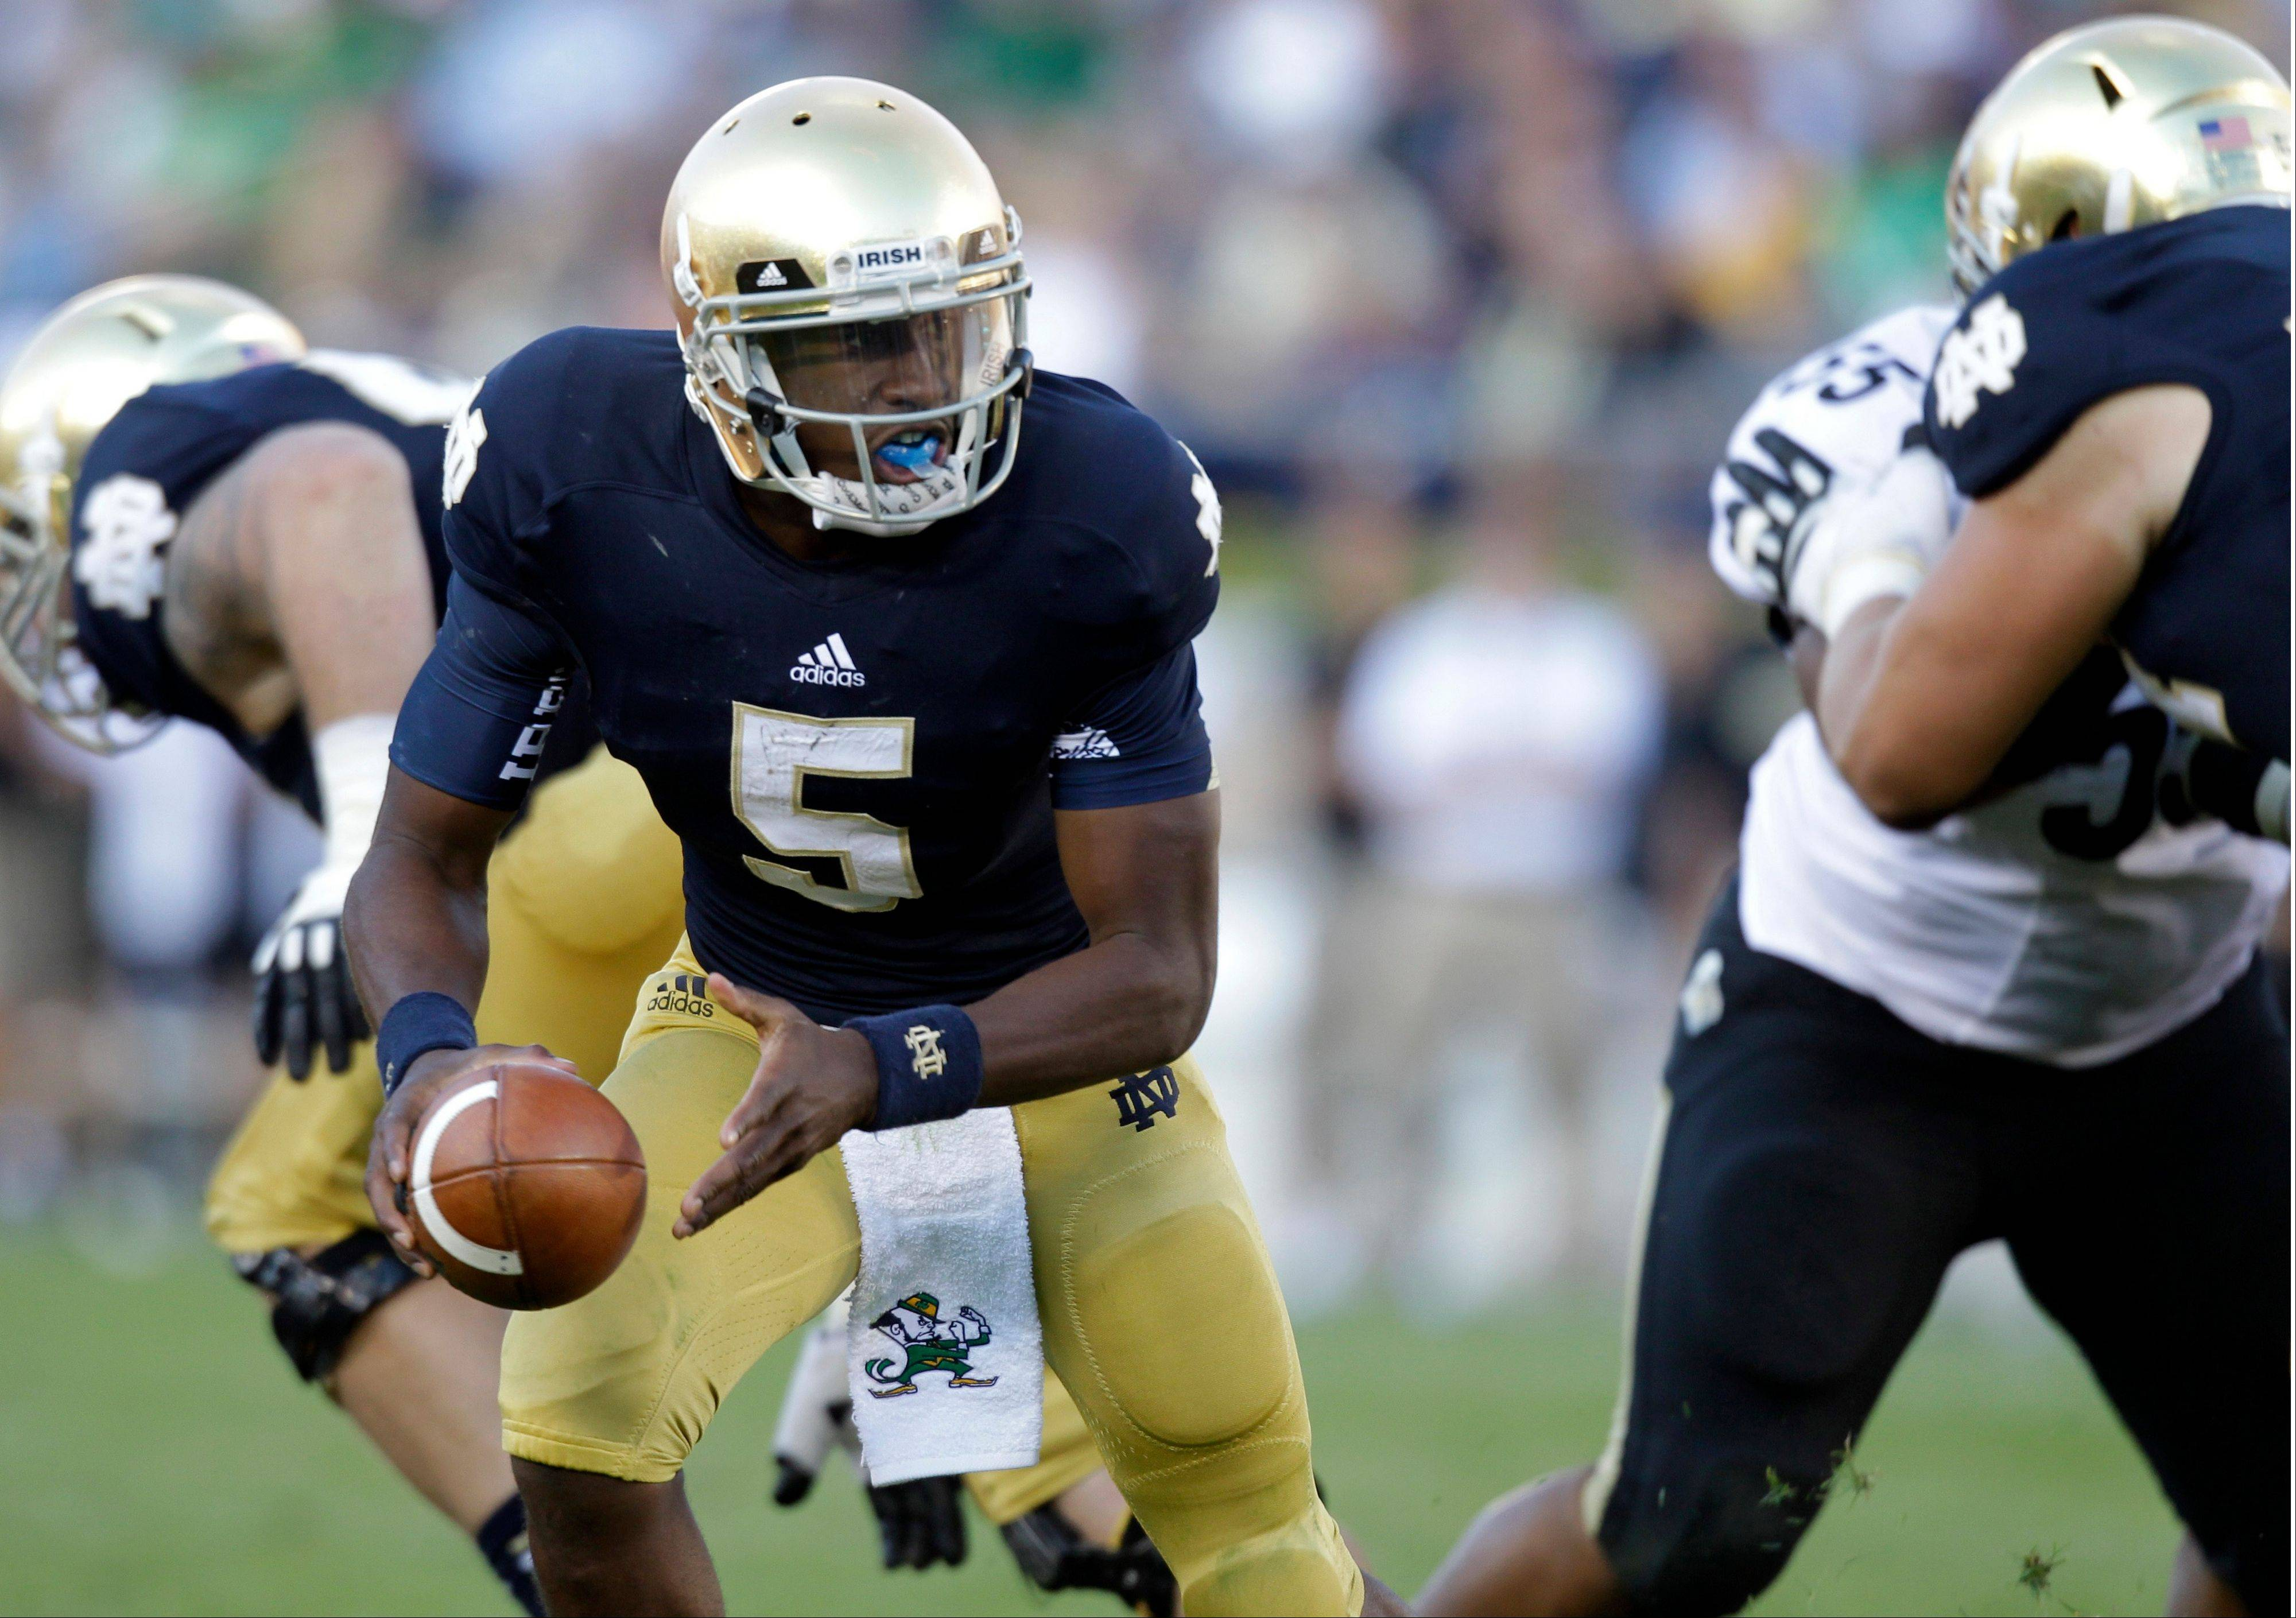 Notre Dame quarterback Everett Golson will start against Oklahoma Saturday, Irish coach Brian Kelly said. Golson missed last week�s game against BYU with a concussion.